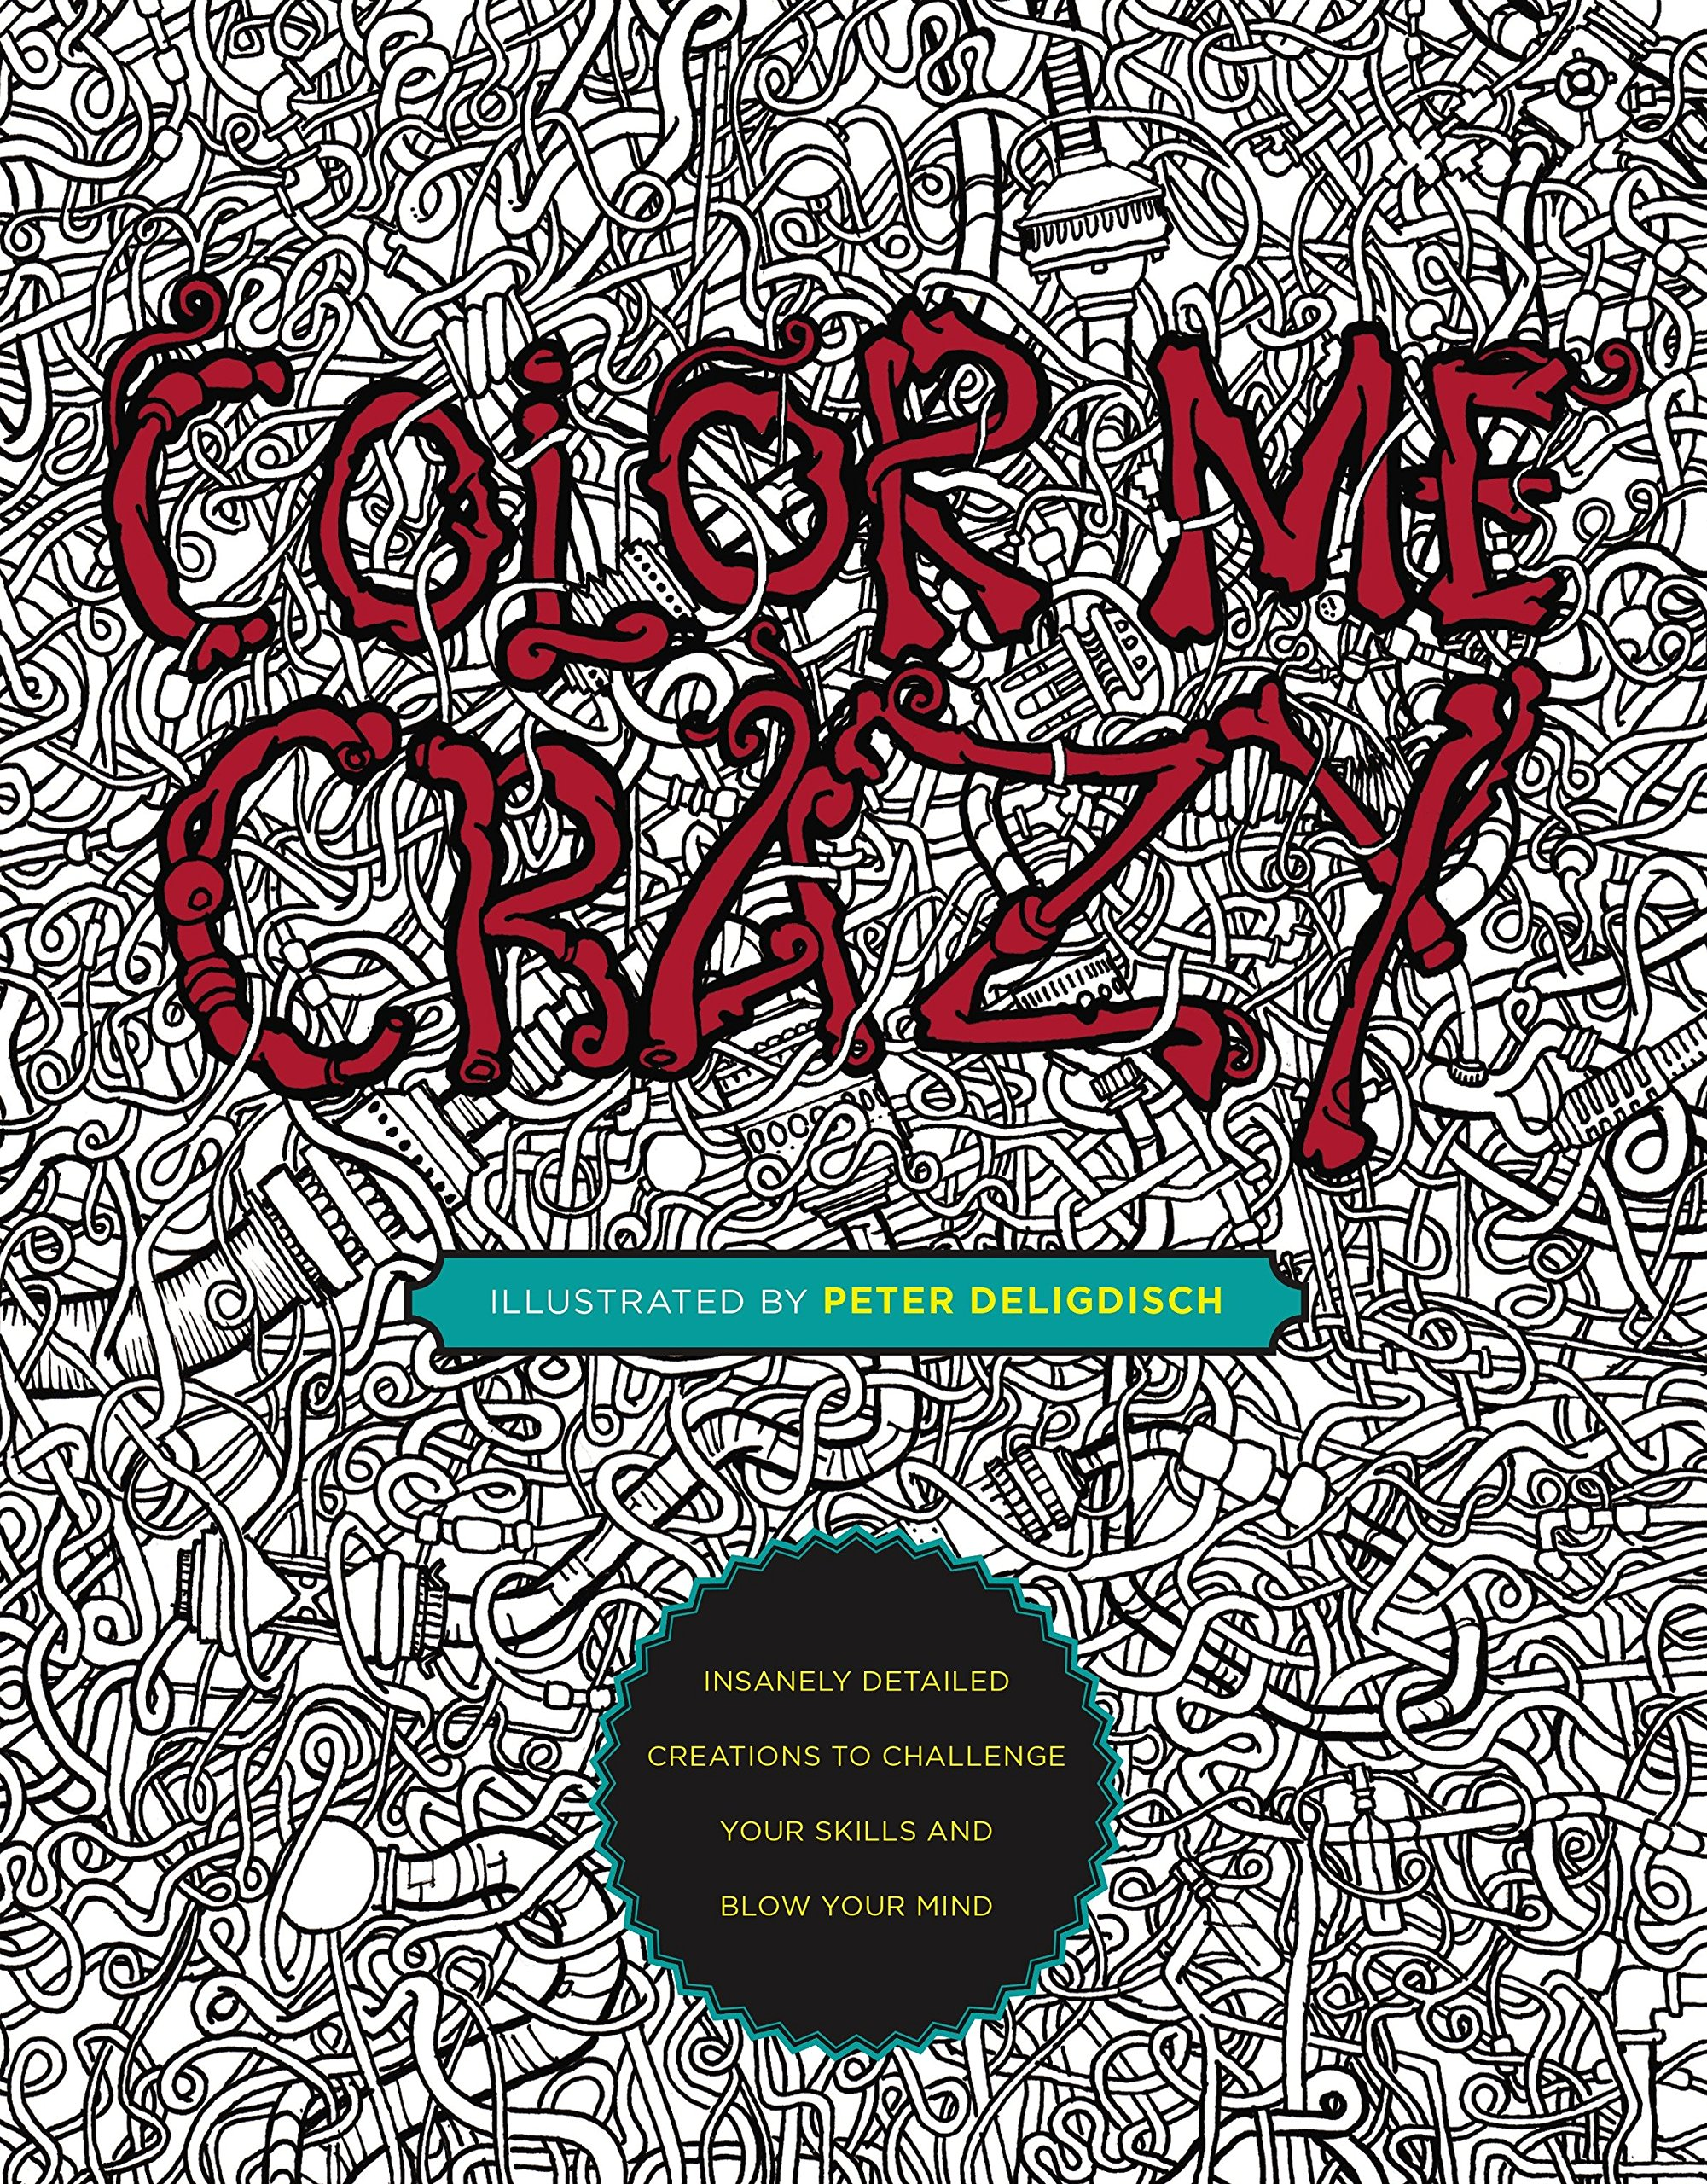 Color Me Crazy: Insanely Detailed Creations to Challenge Your Skills and Blow Your Mind by Deligdisch, Peter